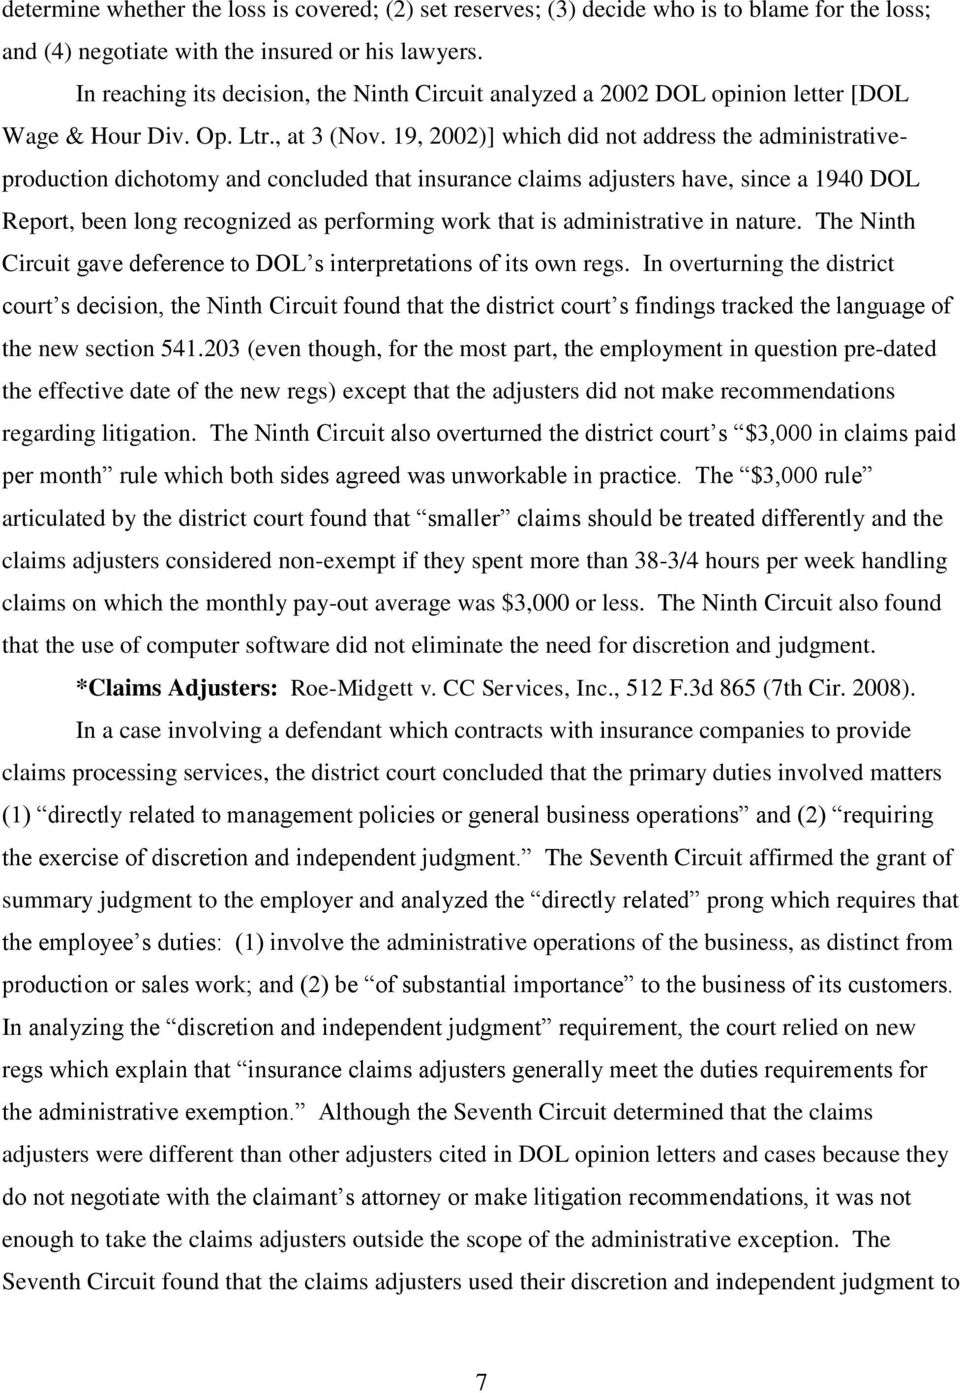 19, 2002)] which did not address the administrativeproduction dichotomy and concluded that insurance claims adjusters have, since a 1940 DOL Report, been long recognized as performing work that is